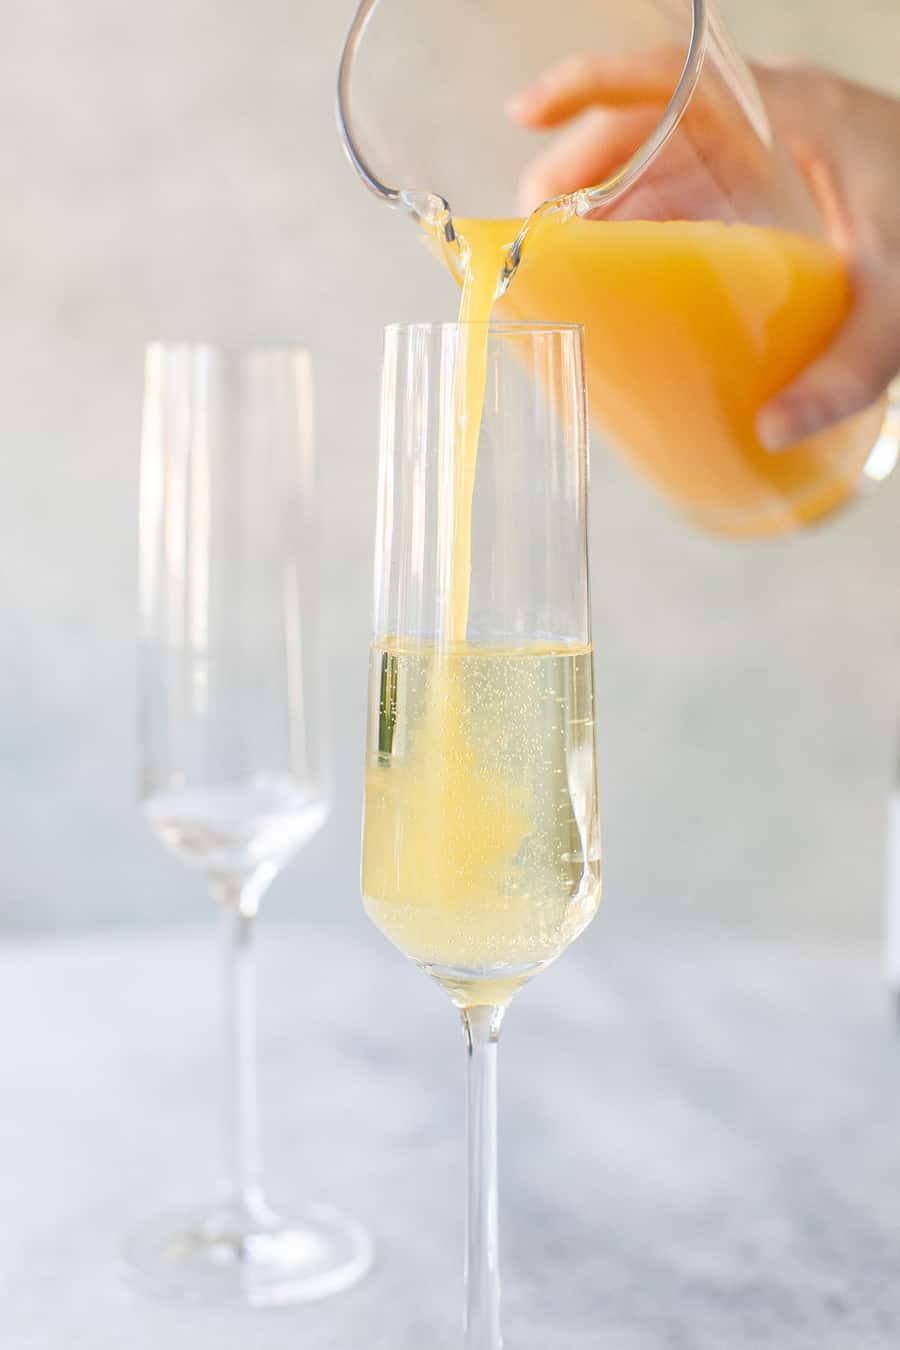 Pouring orange juice into sparkling wine in a Champagne flute